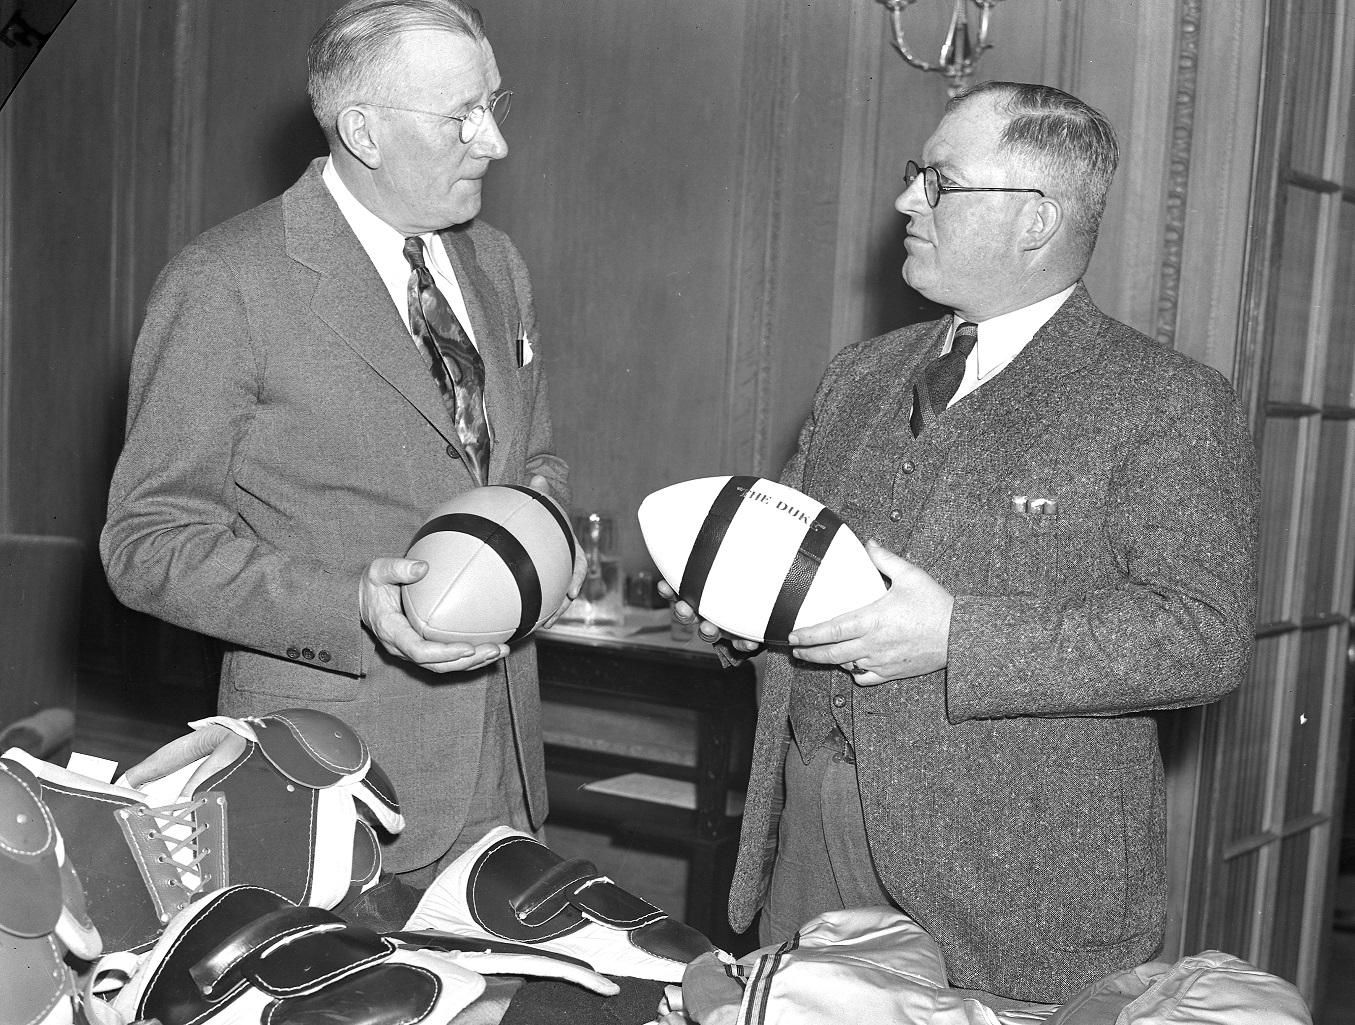 Jock Sutherland, pictured on left